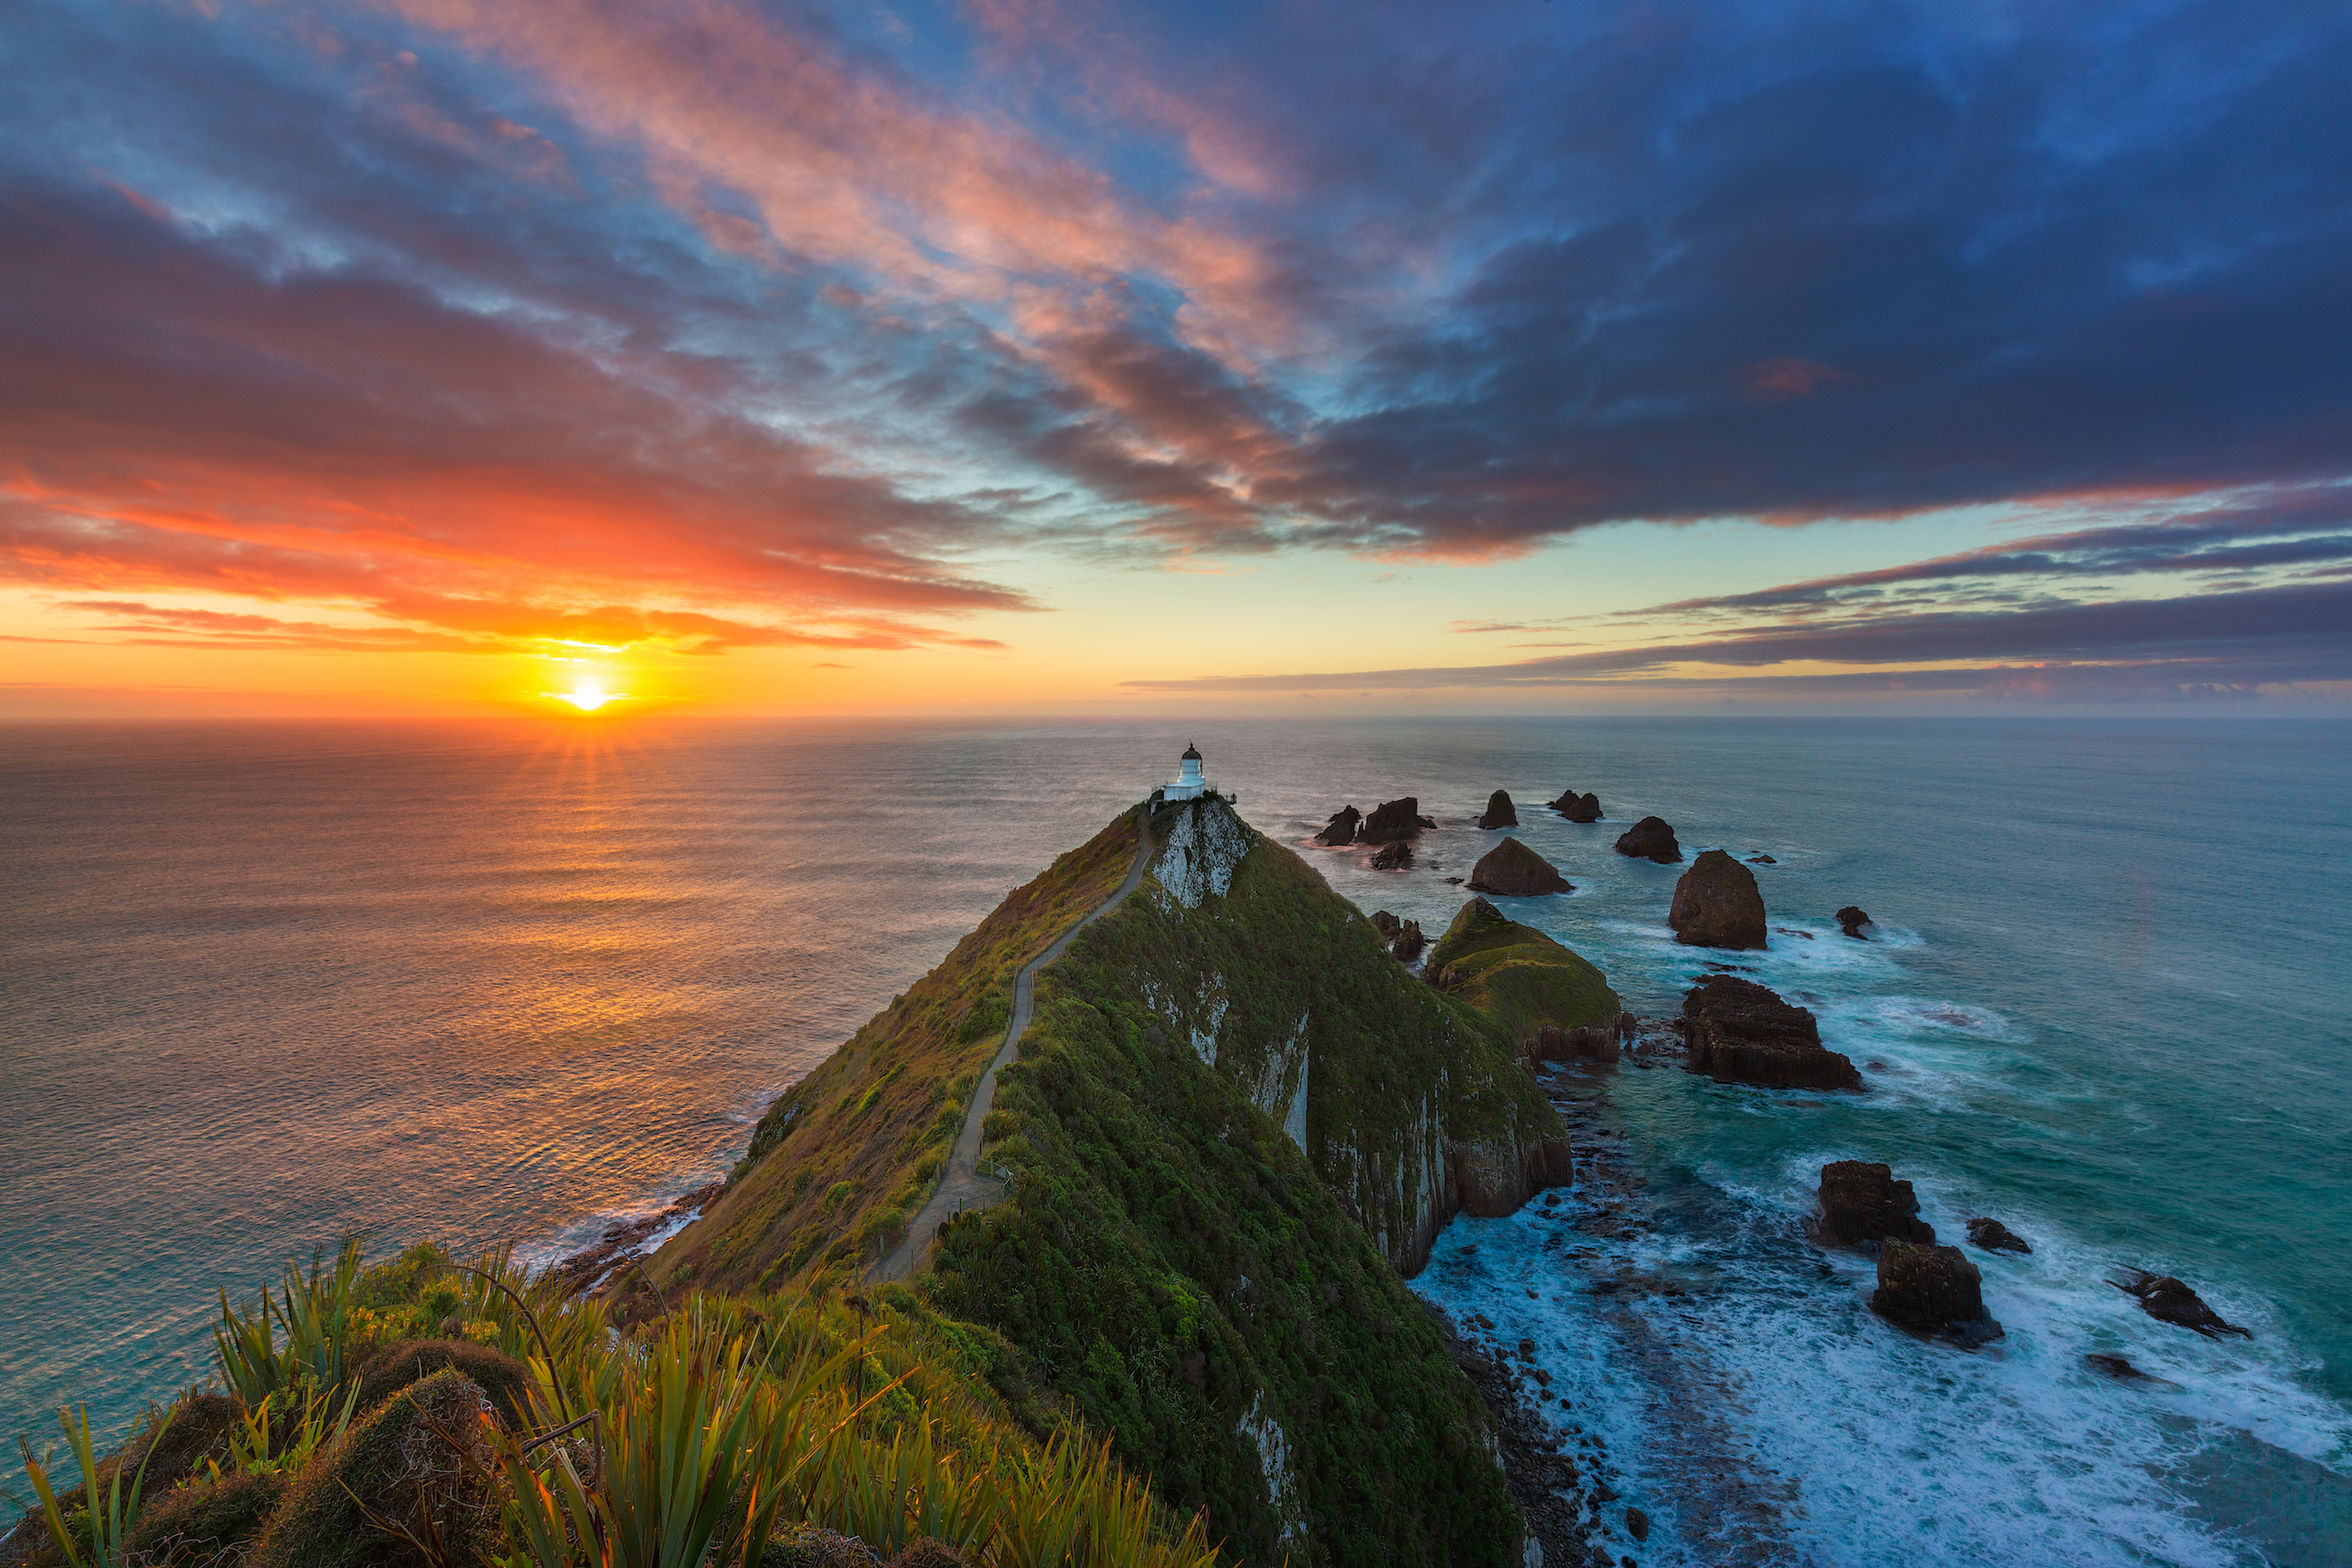 Wake up early and appreciate the full beauty of New Zealand